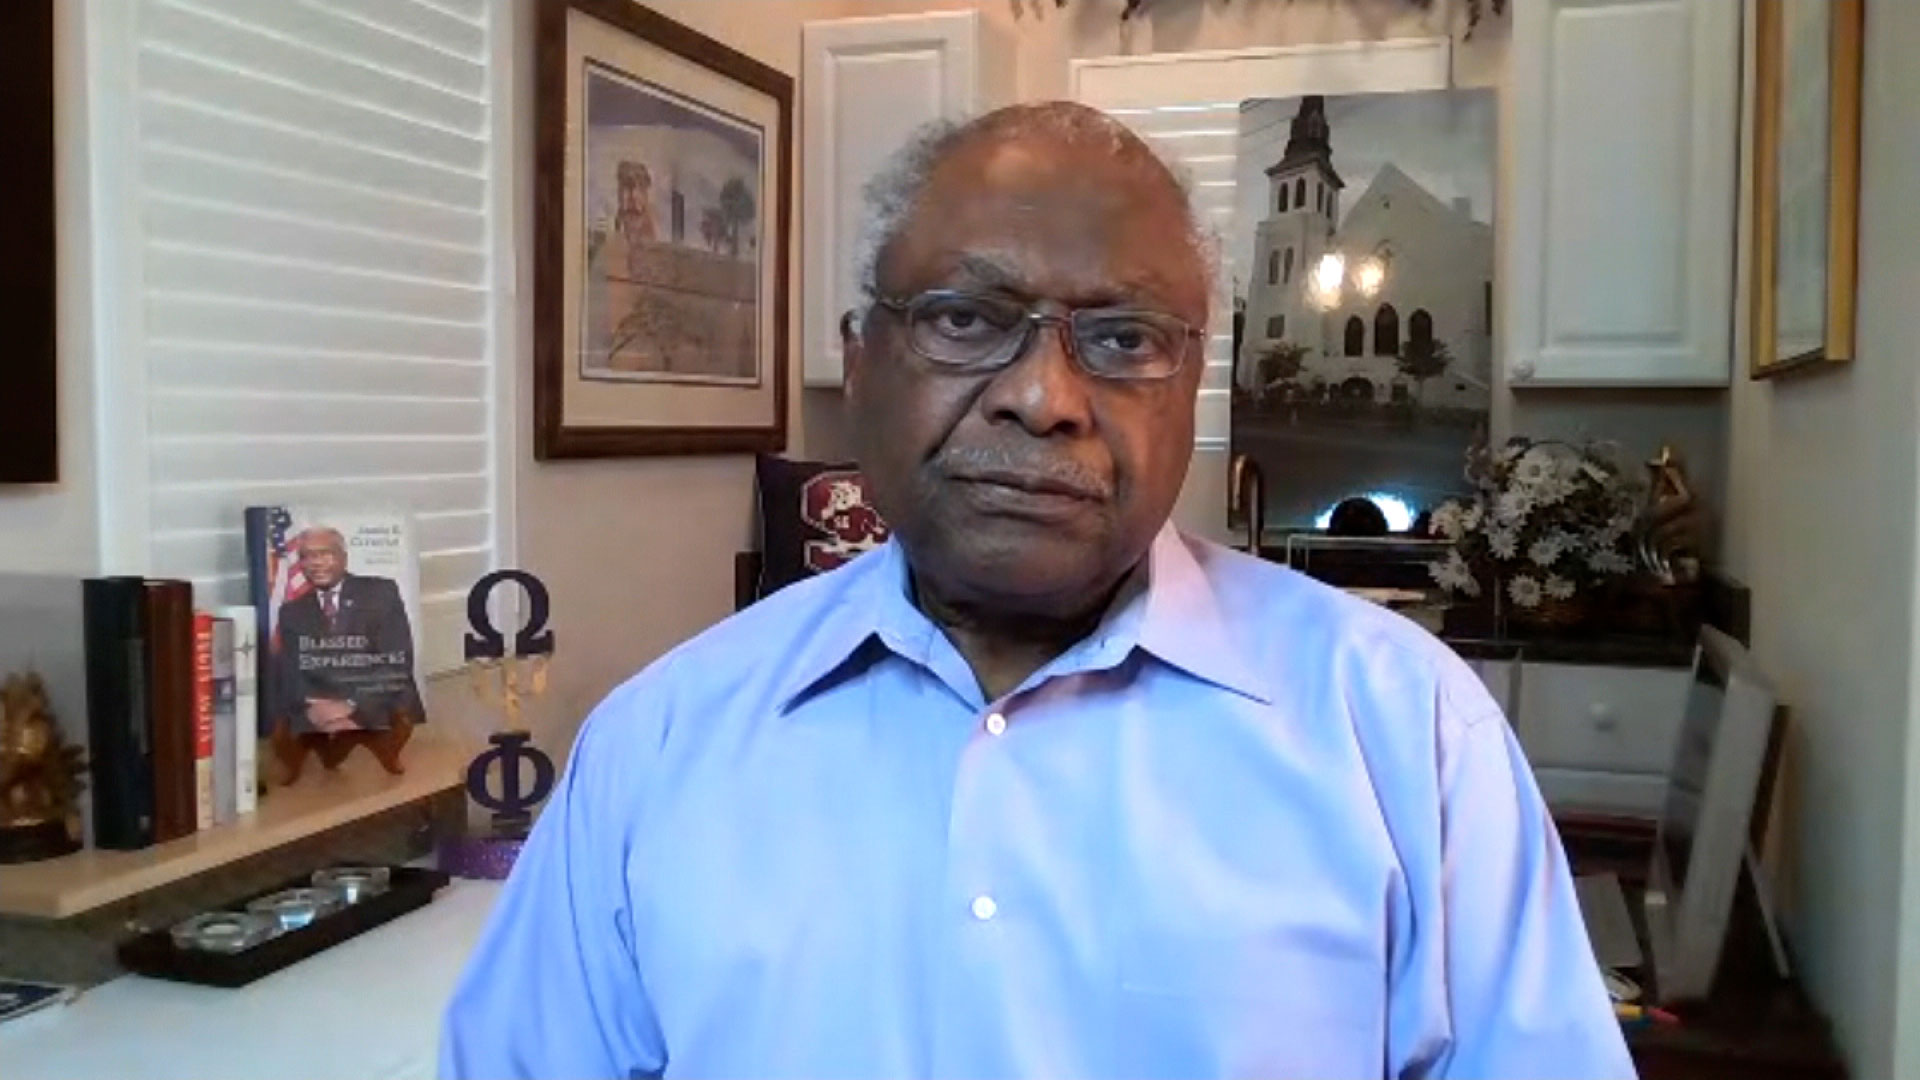 Clyburn says Democrats should not stall police reform talks over push for 'perfect' bill and ending qualified immunity